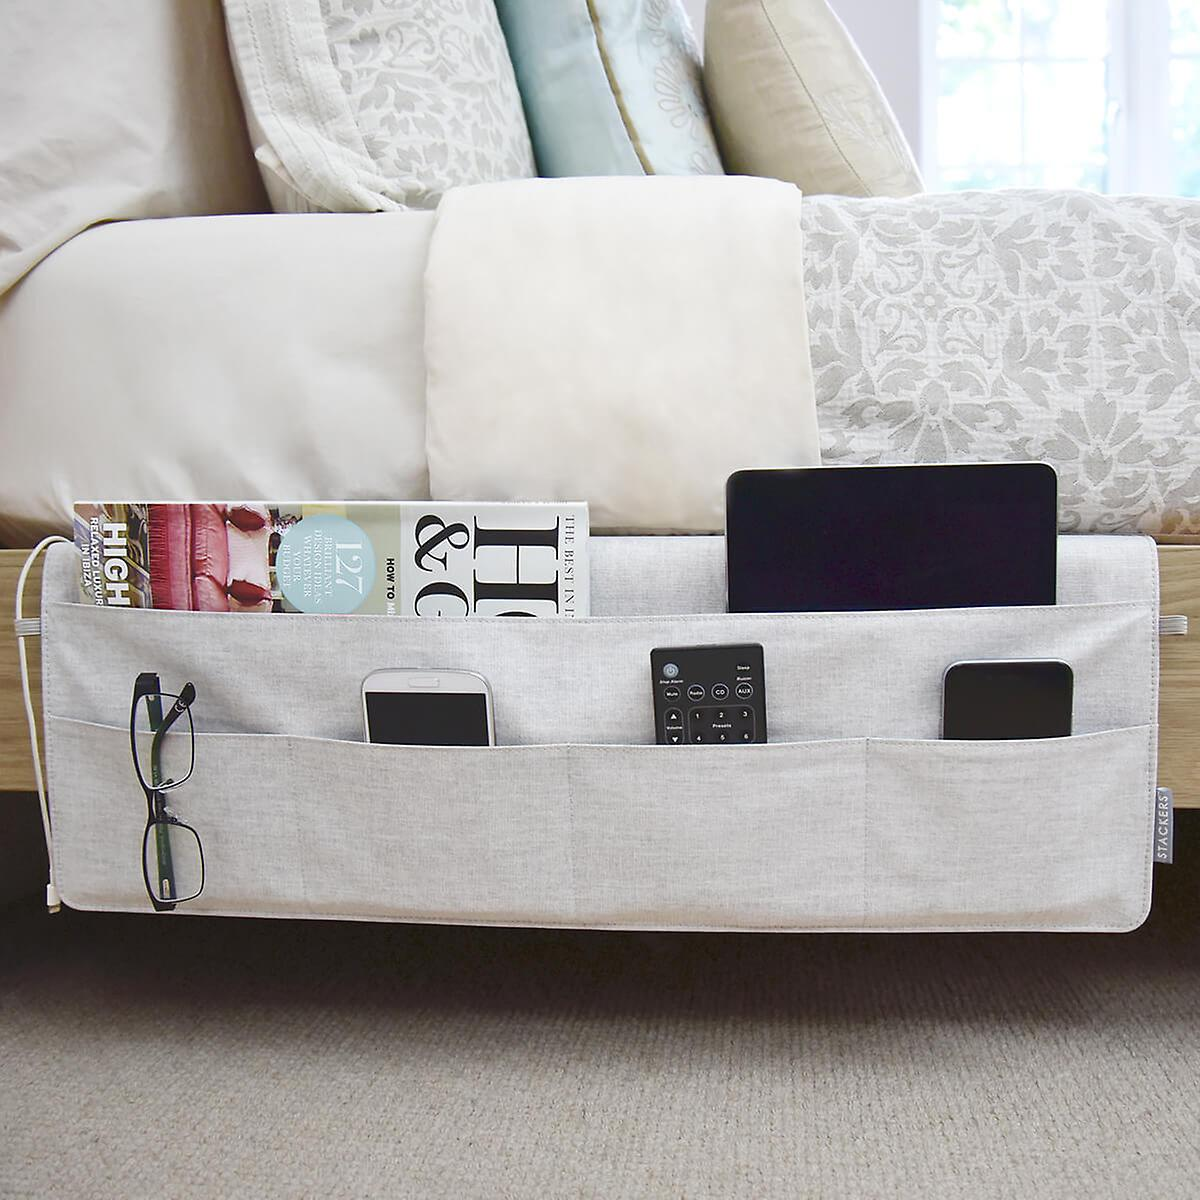 Stackers Bedside Pockets